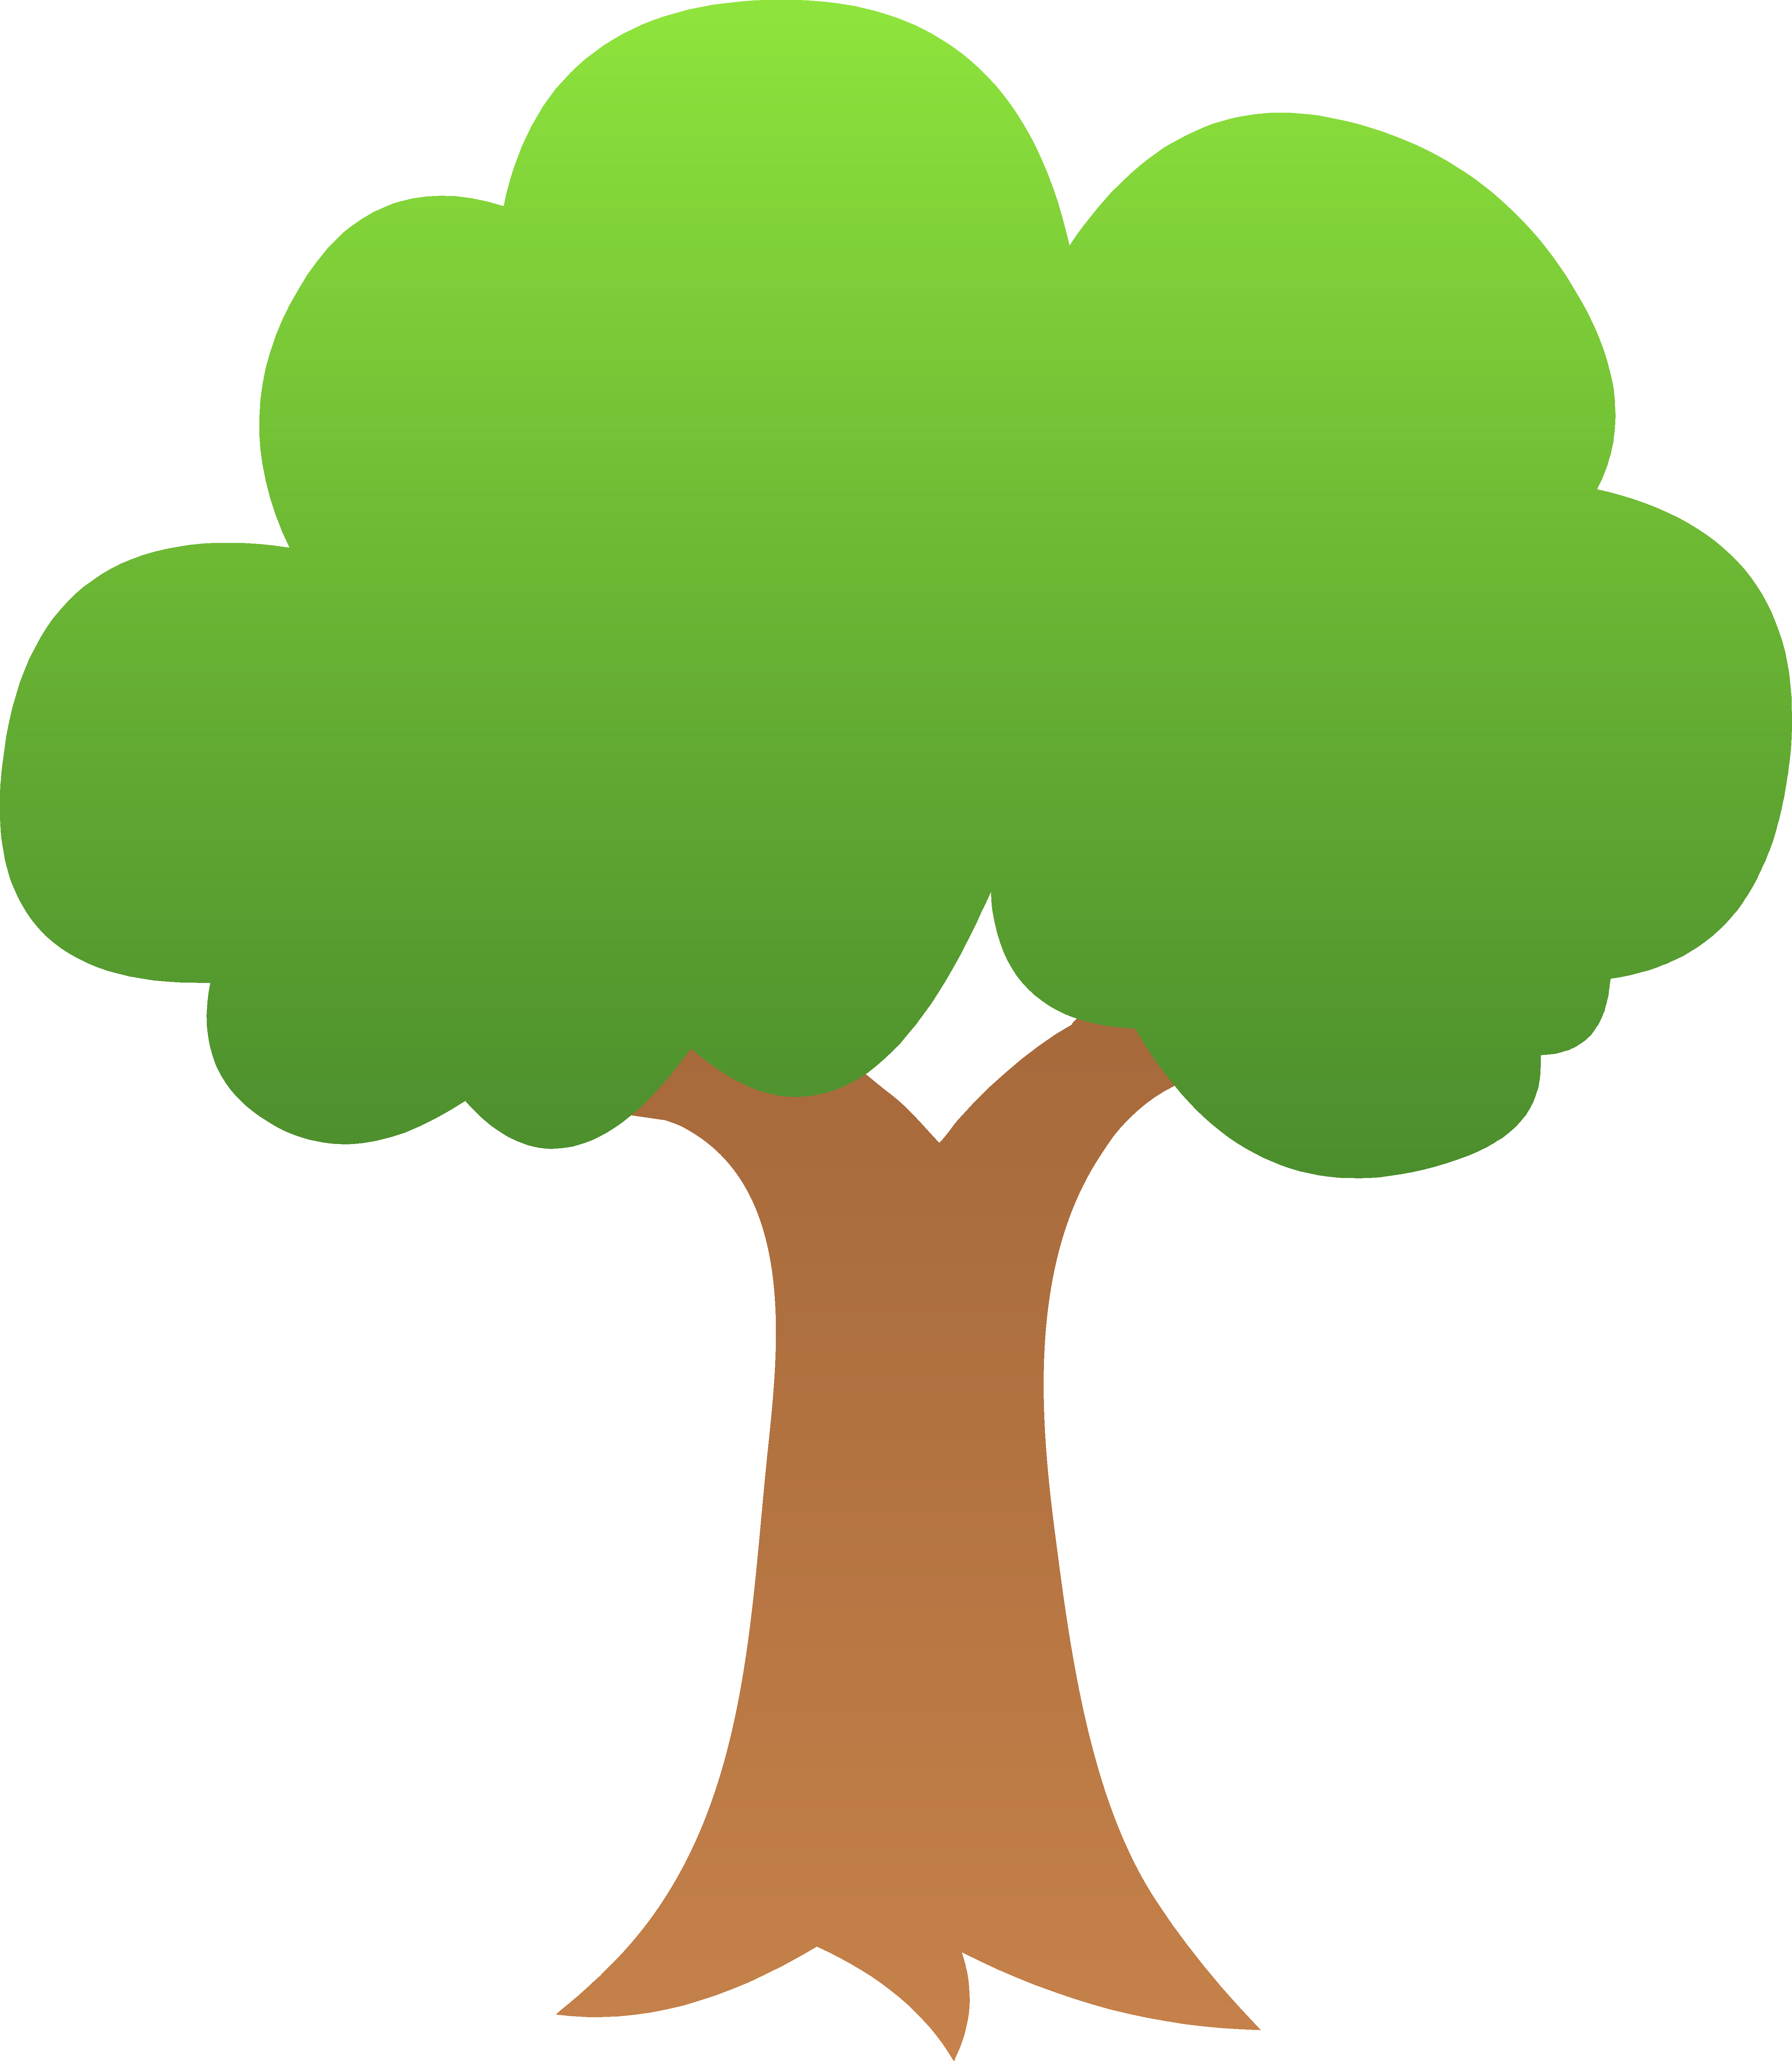 Tree Clip Art 1 - Tree Clipart PNG